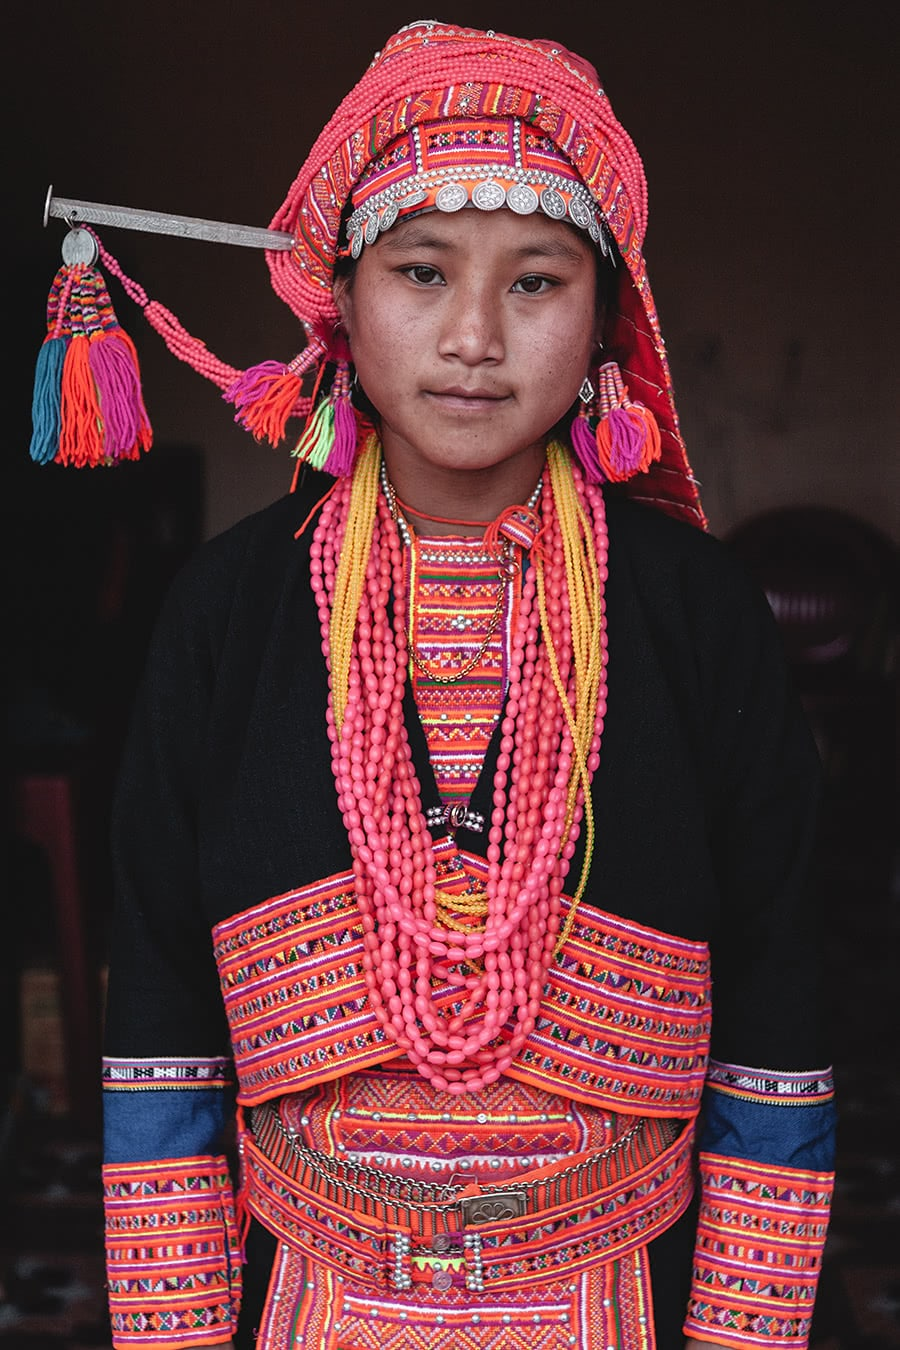 An Akha Loma girl wearing traditional clothing in Muang La, Laos.